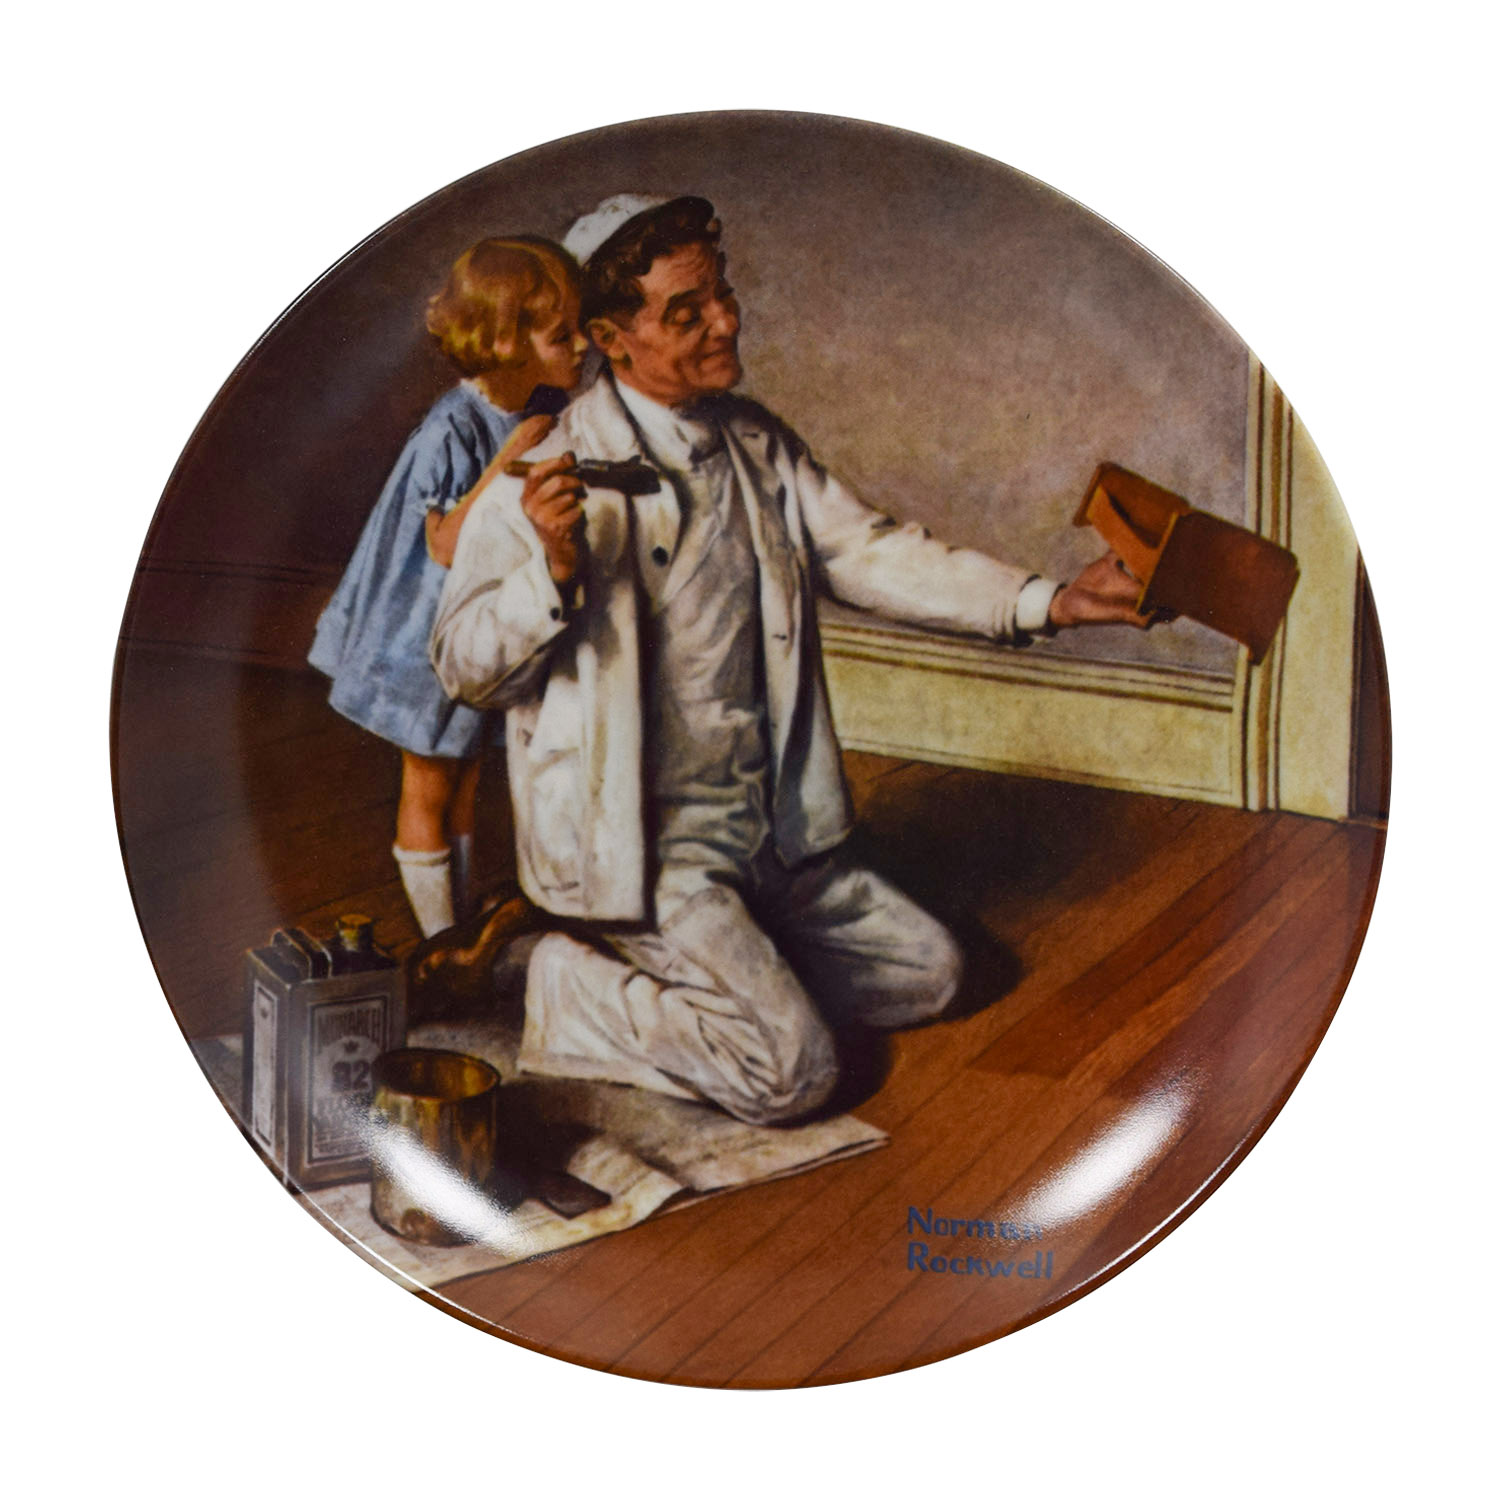 Edward M. Knowles Edward M. Knowles Norman Rockwells The Painter Plate Wall Art